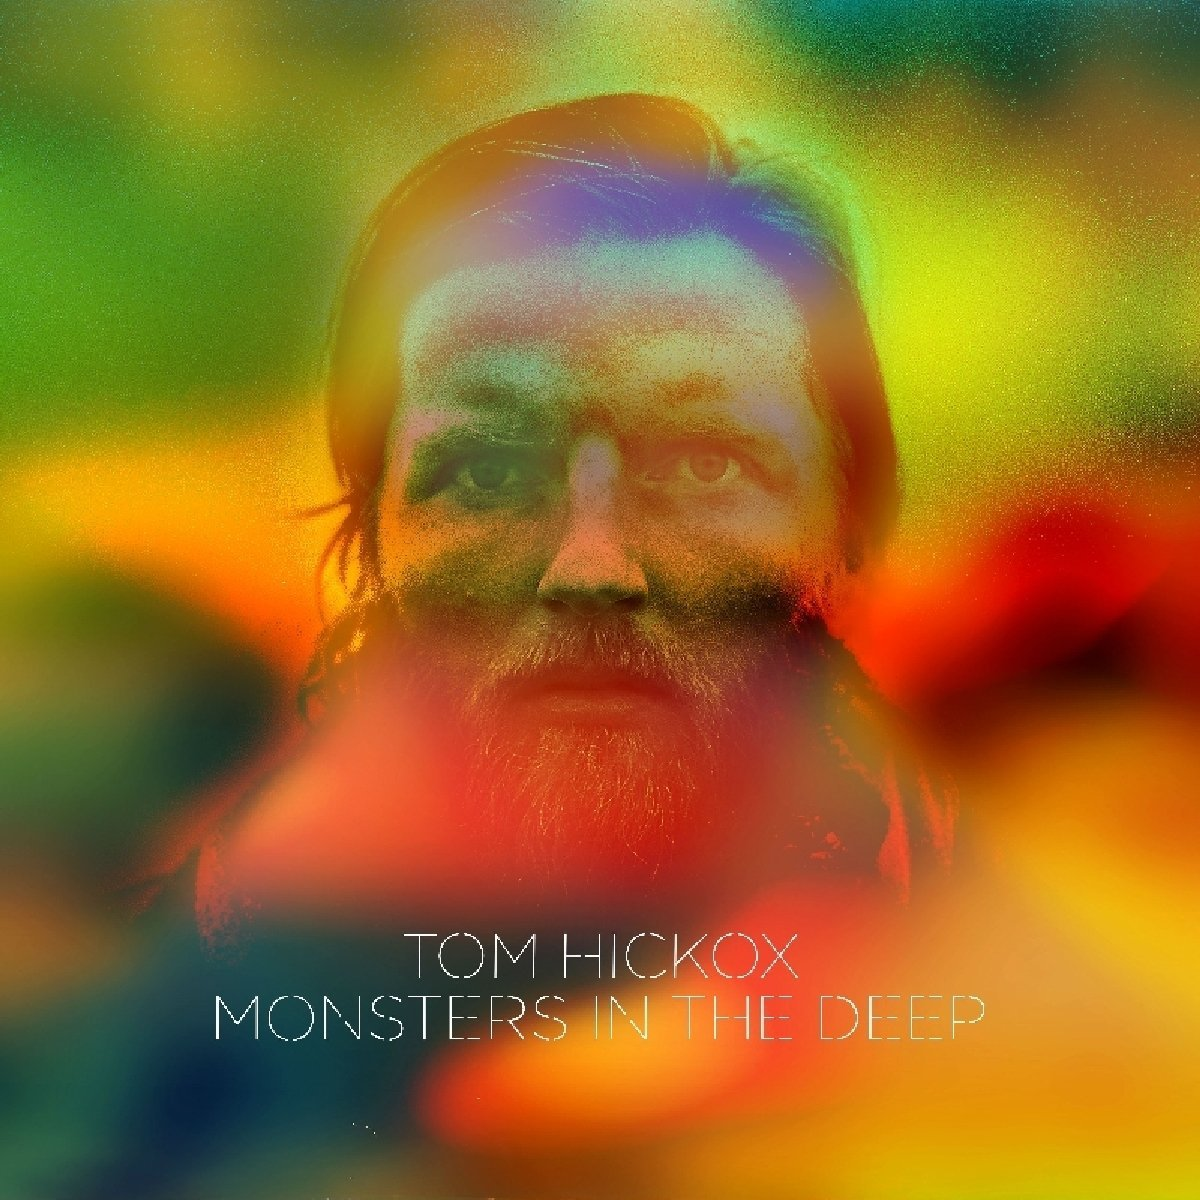 Tom Hickox – Monsters In the Deep (Family Tree/Warner Chappell)